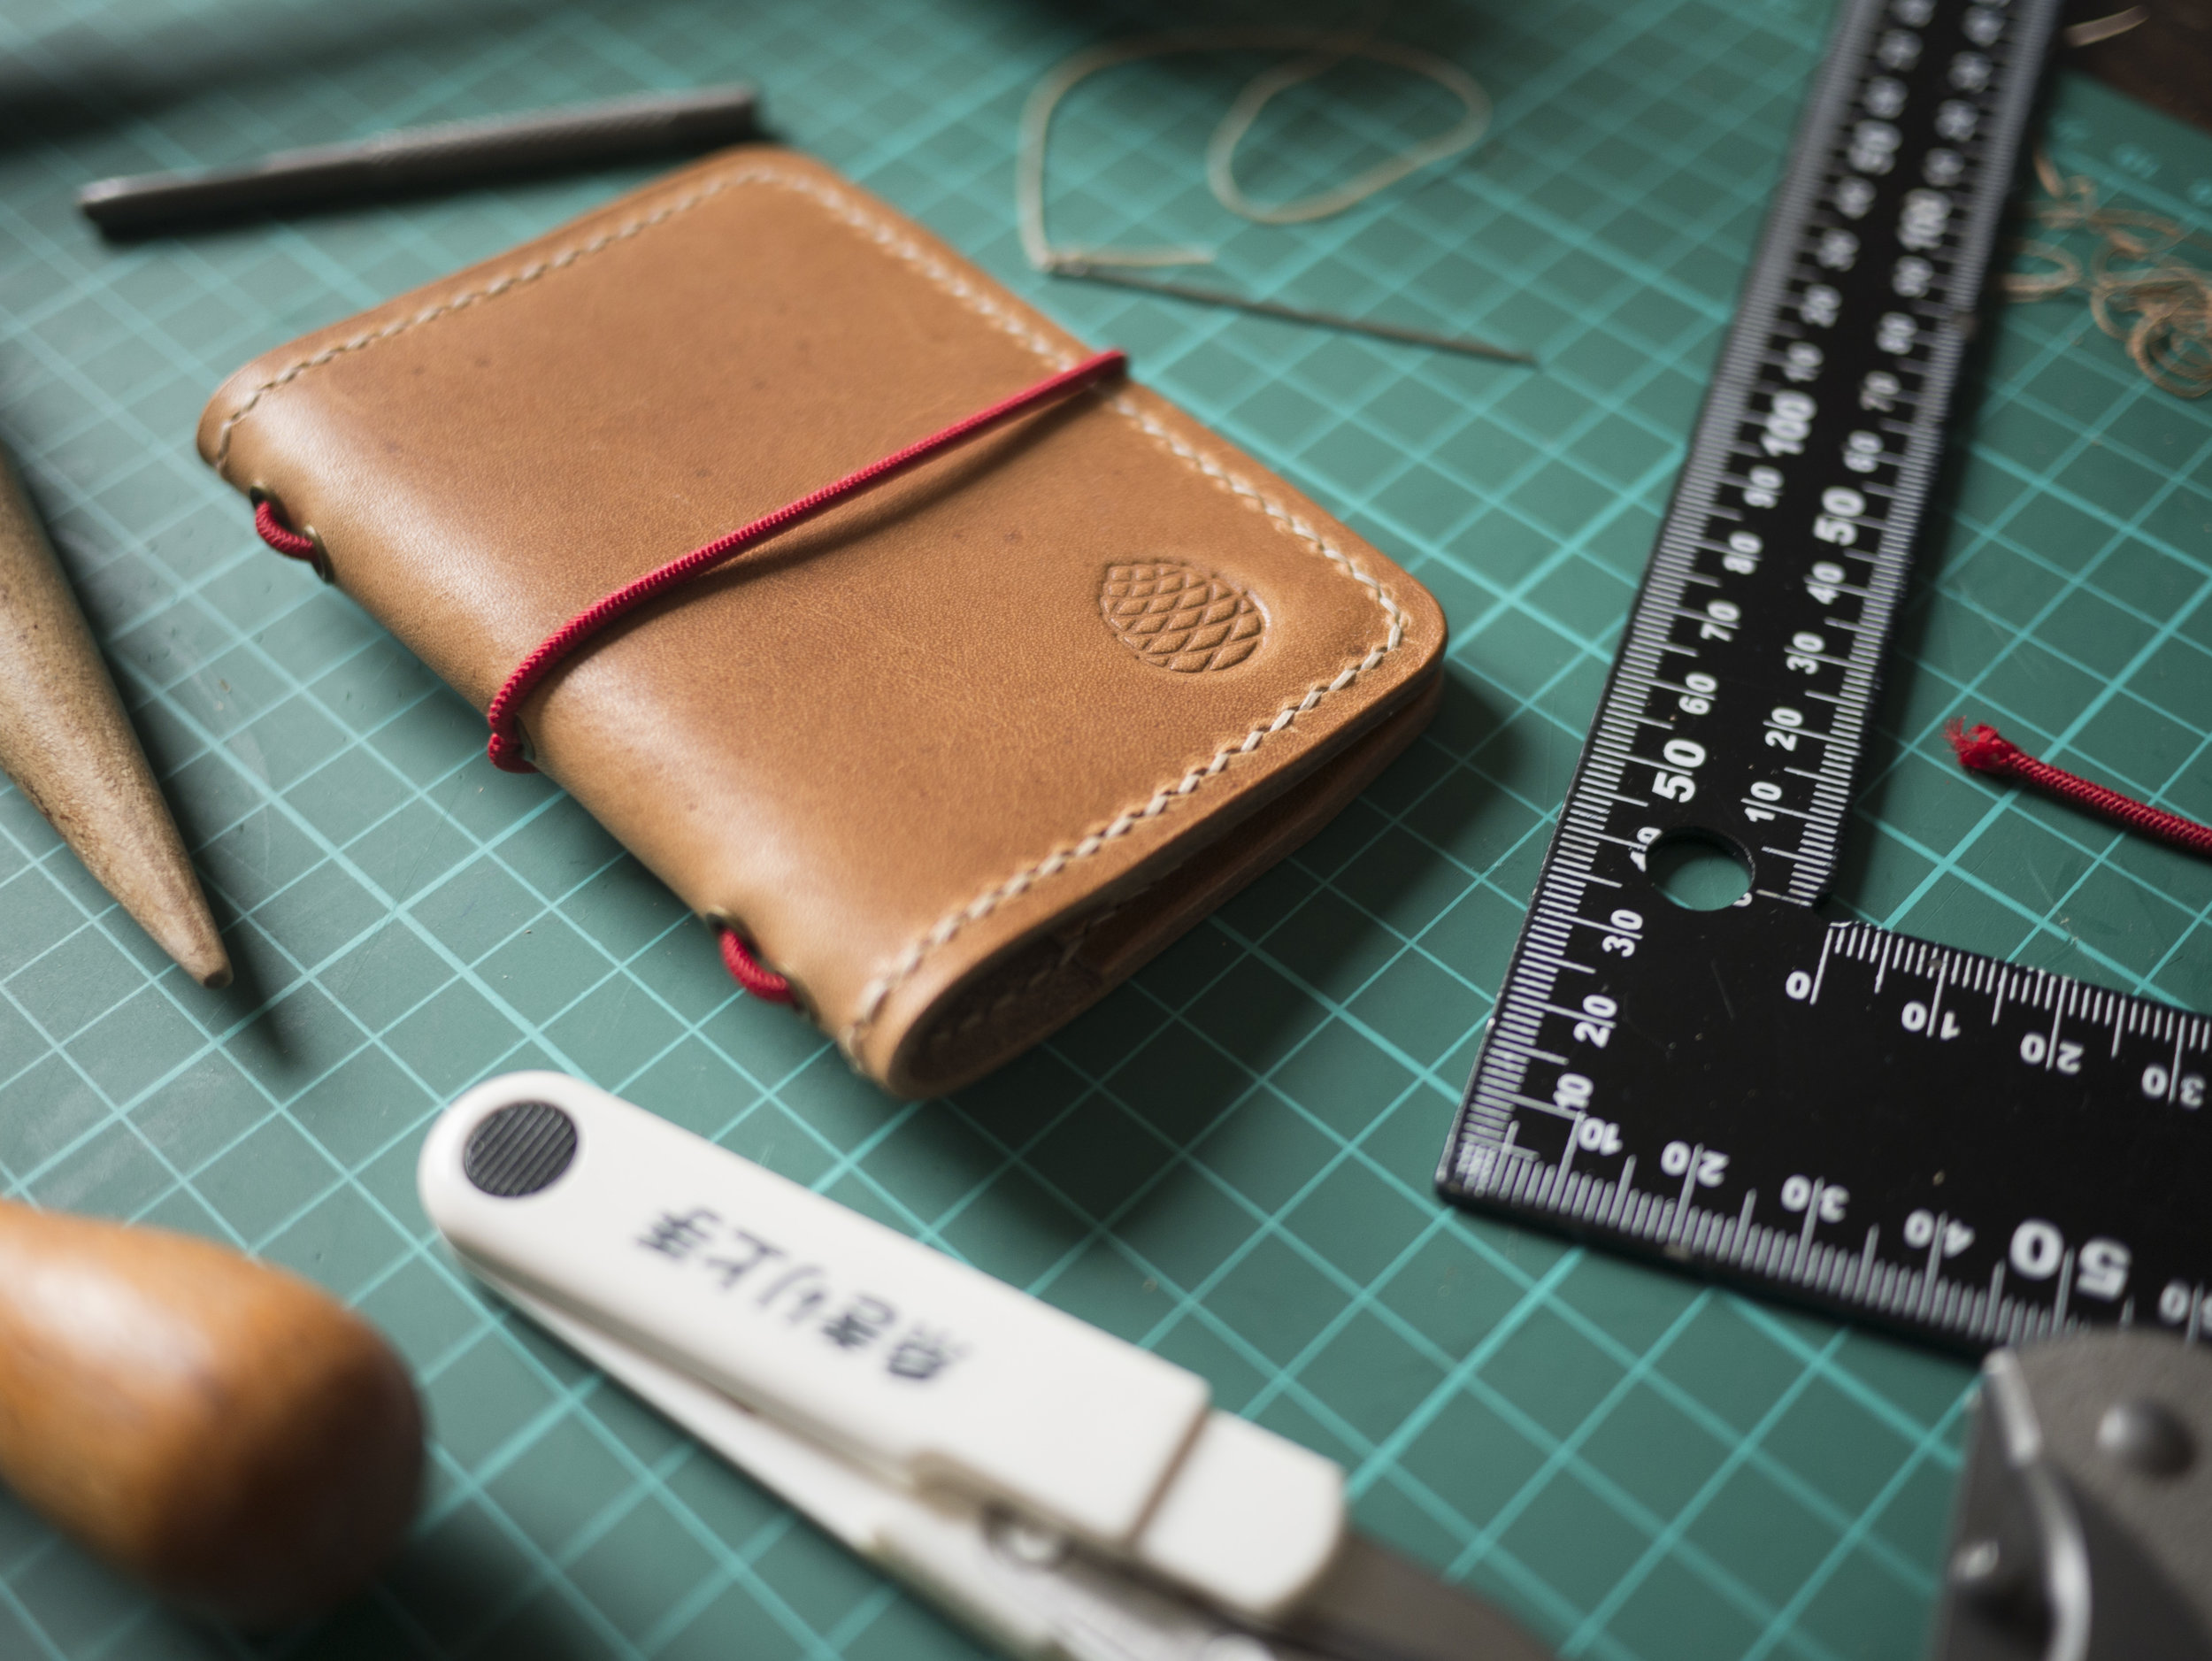 Handmade in Sheffield - We spent a thoroughly enjoyable morning with James from Flat leather documenting our wallets being handmade from scratch.View photojournal